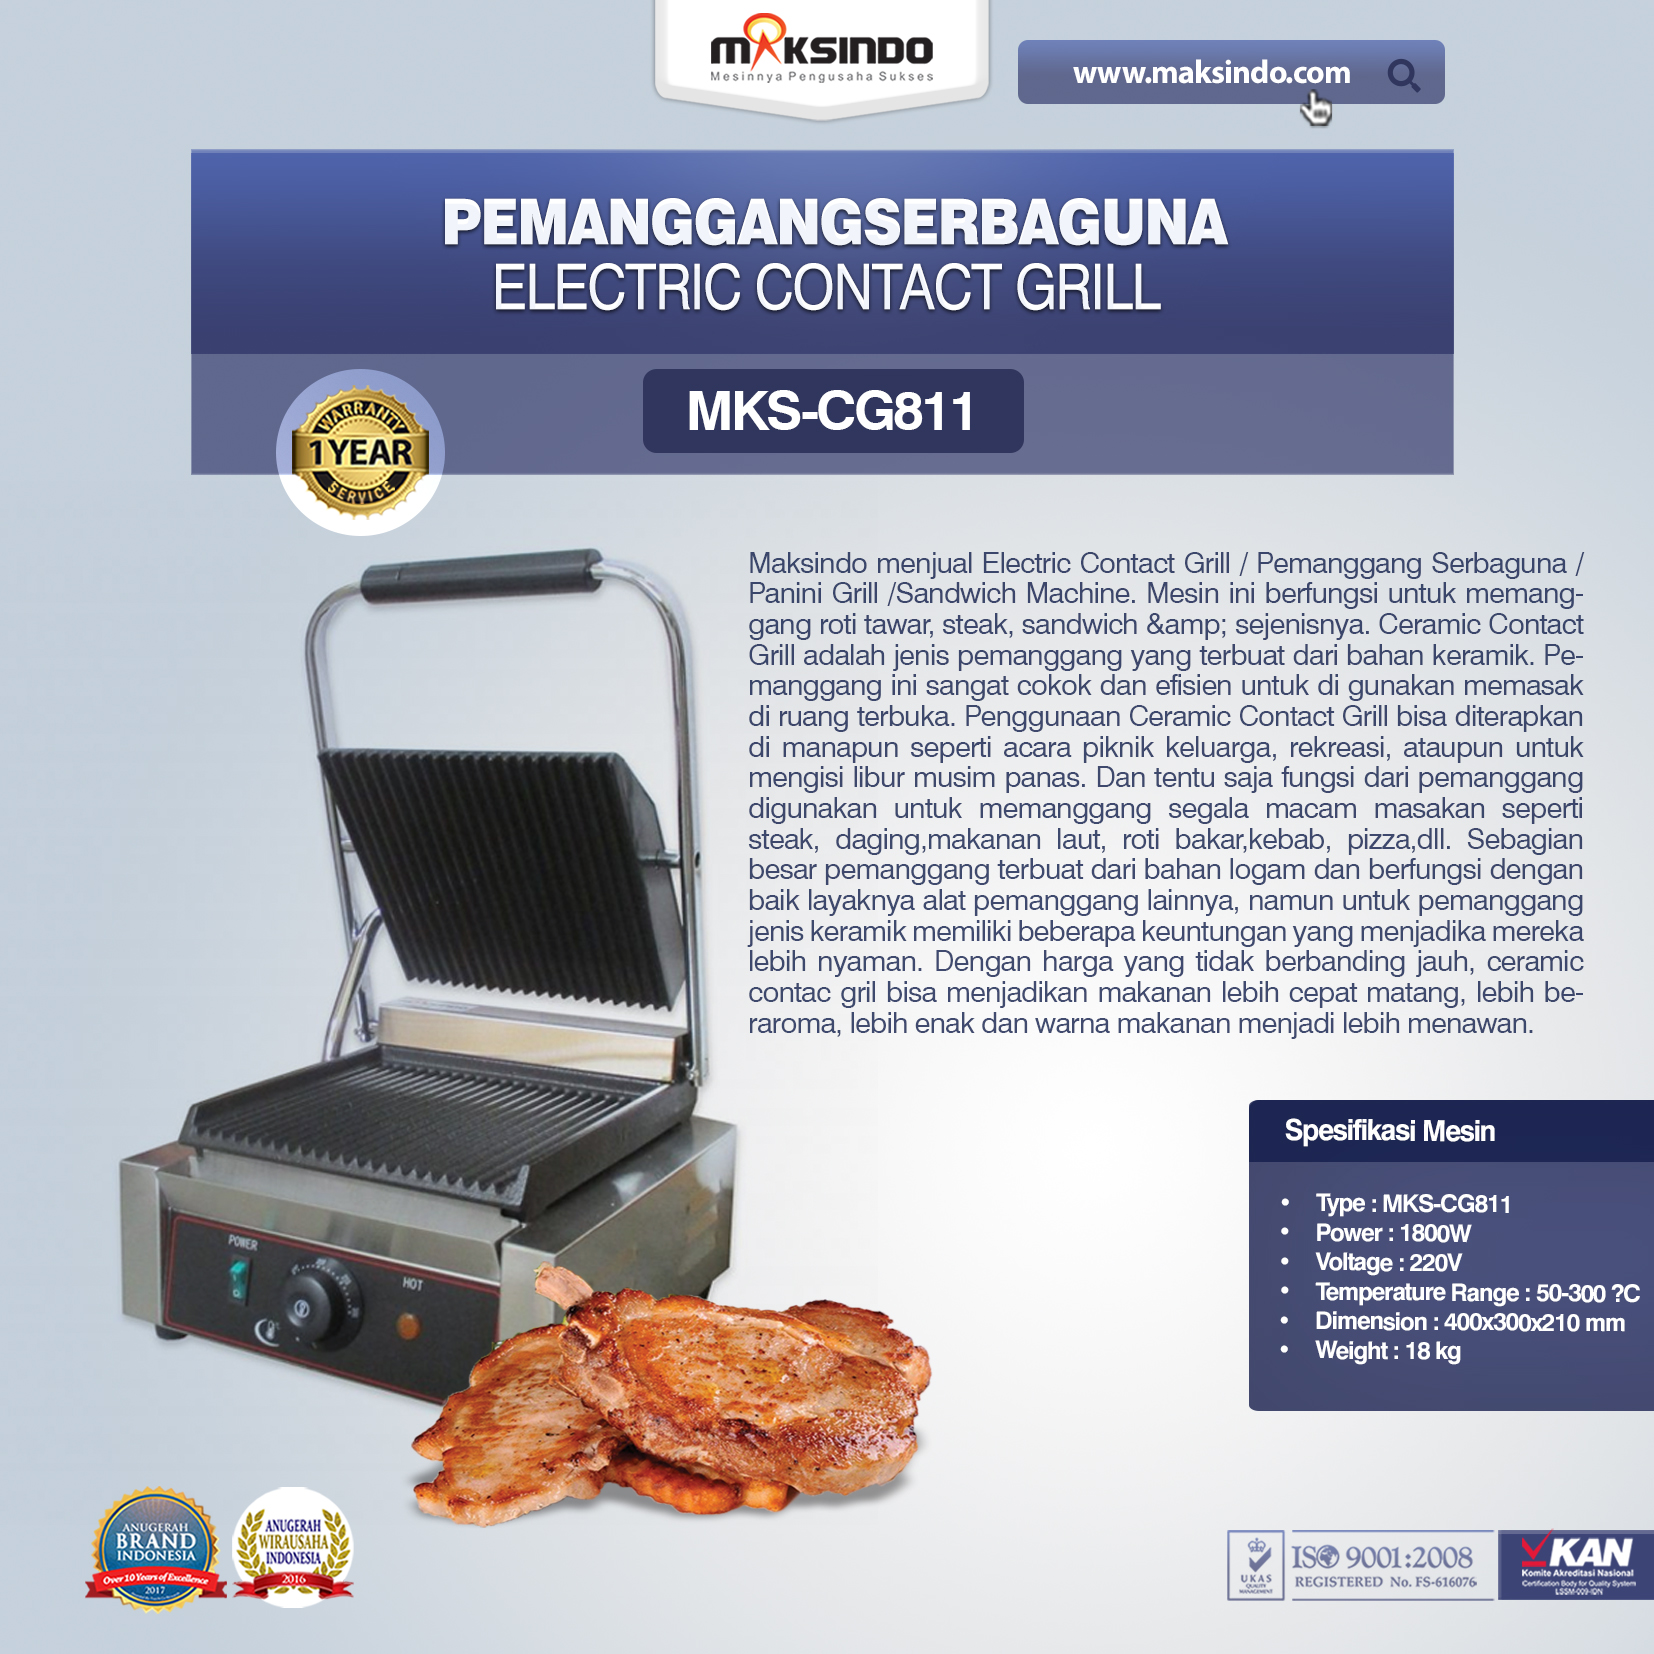 Electric Contact Grill MKS-CG811